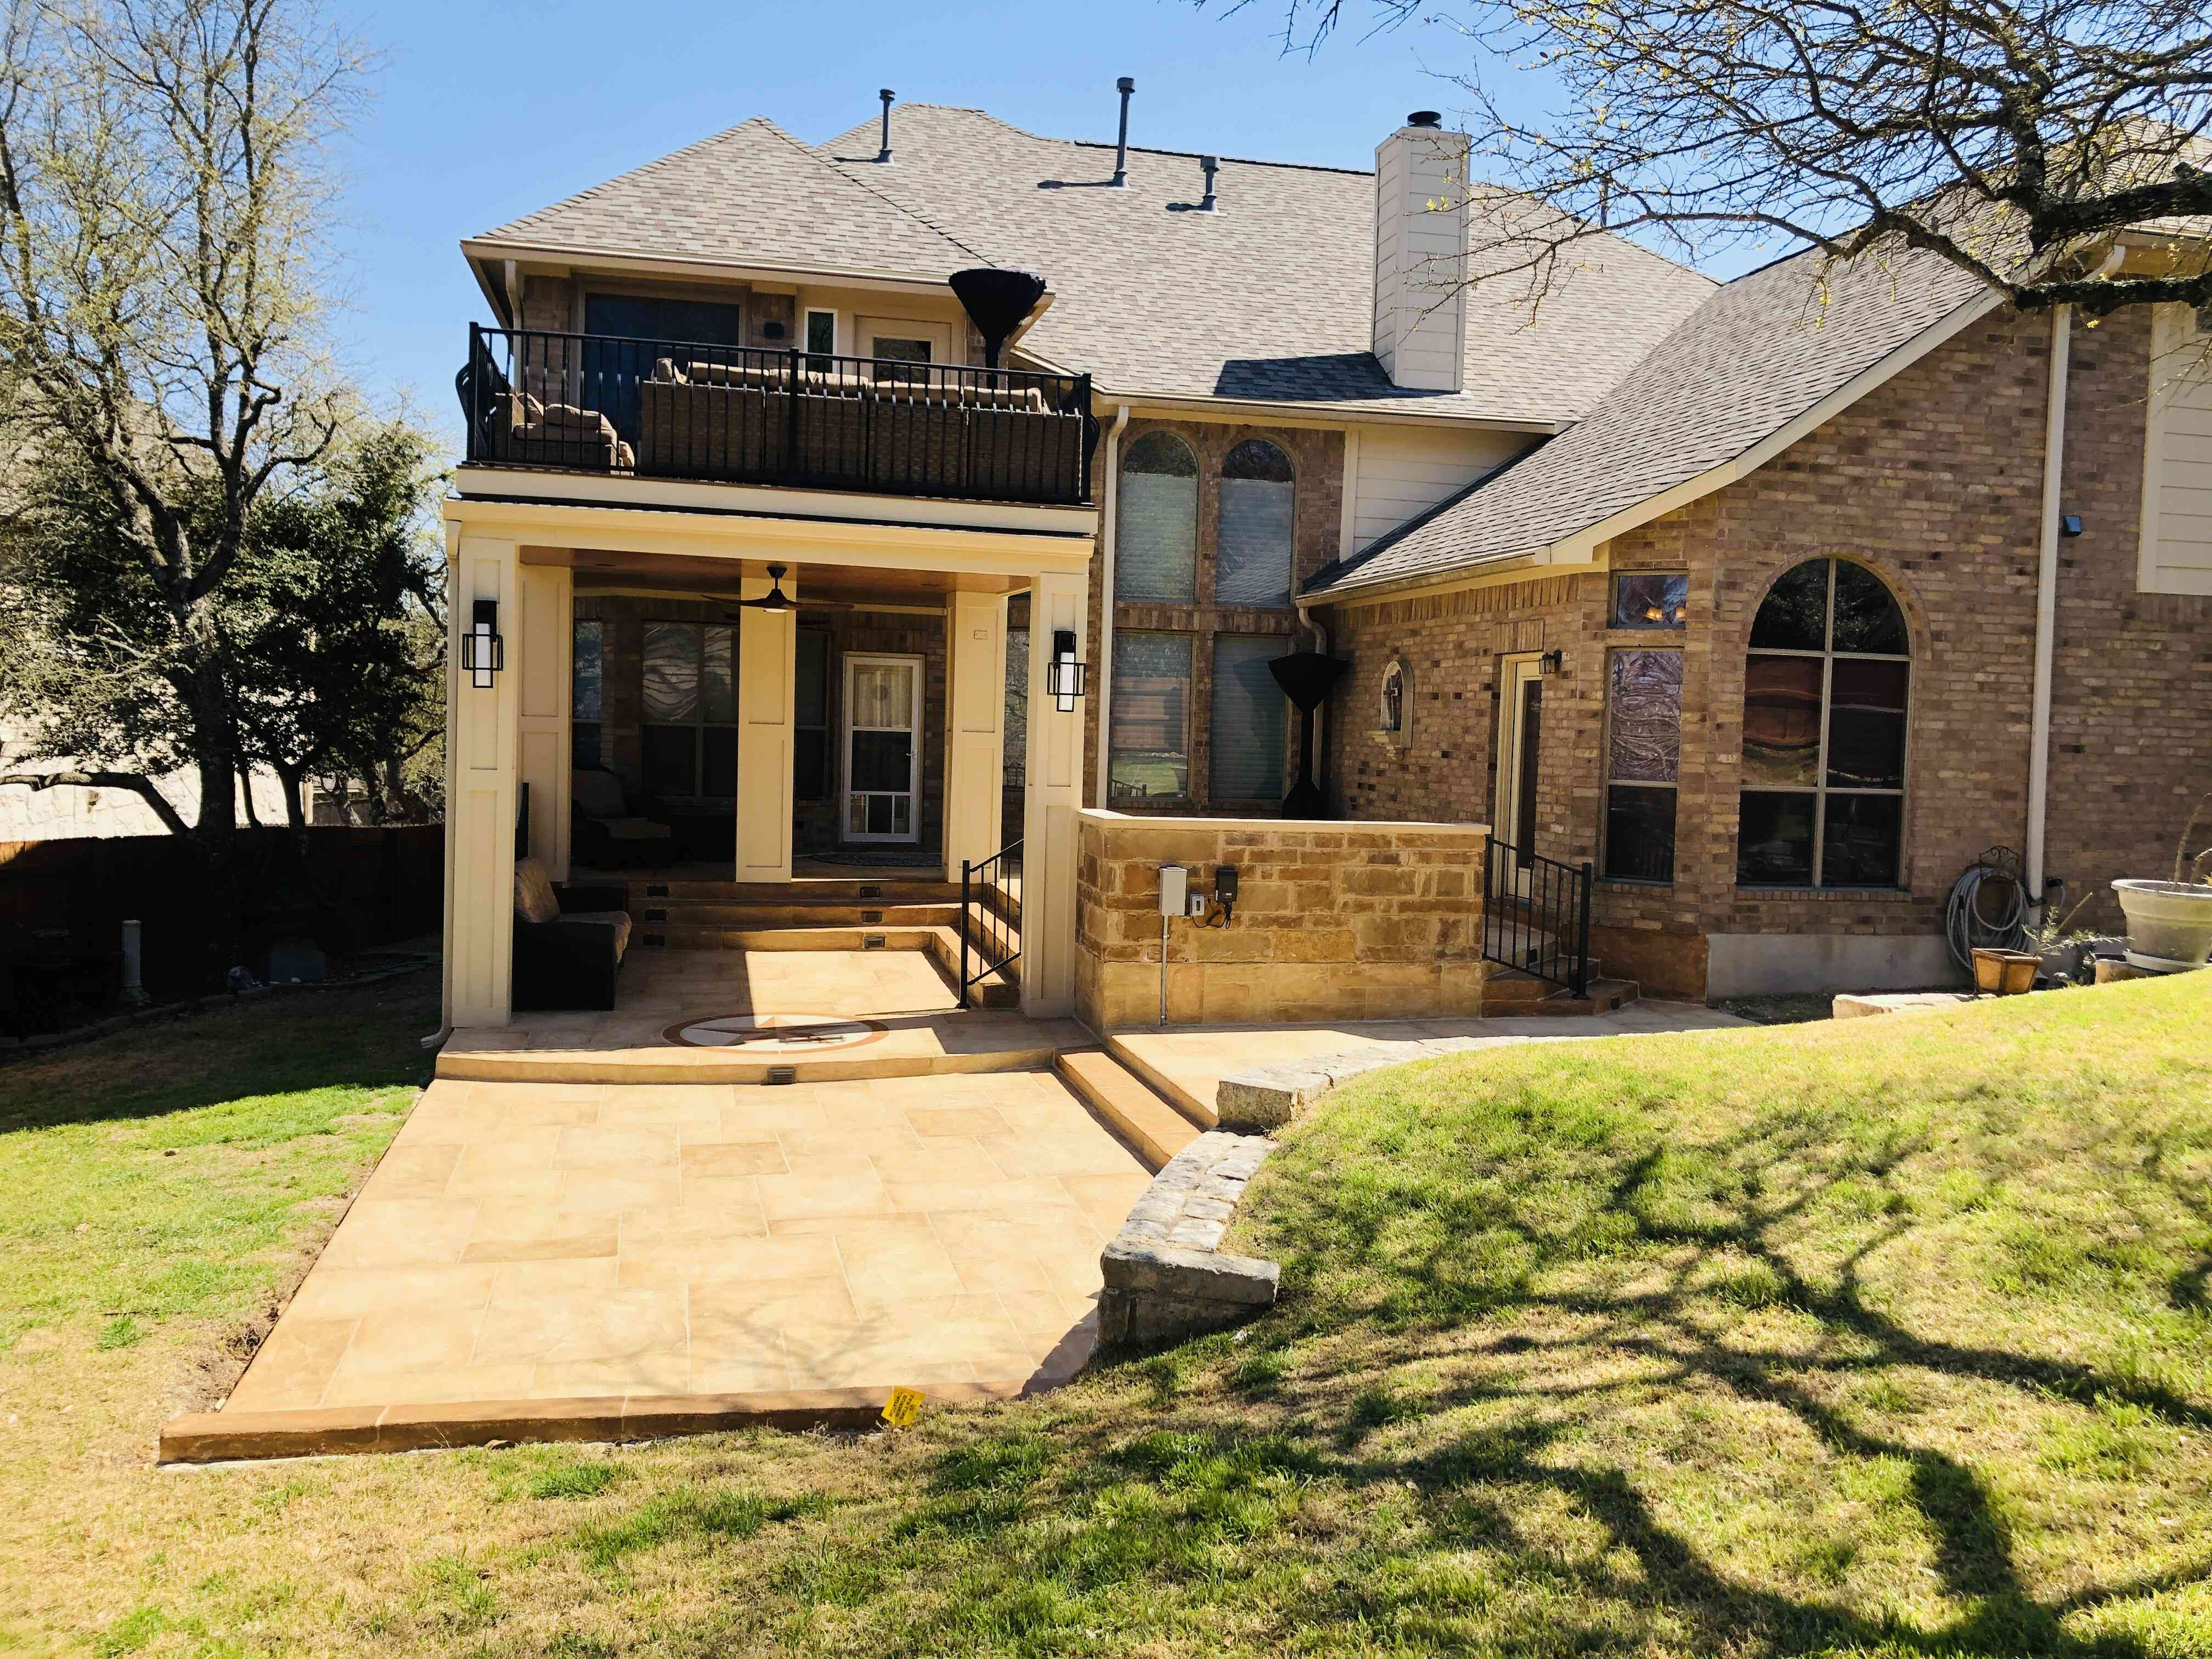 South Austin Custom Deck and Hardscapes